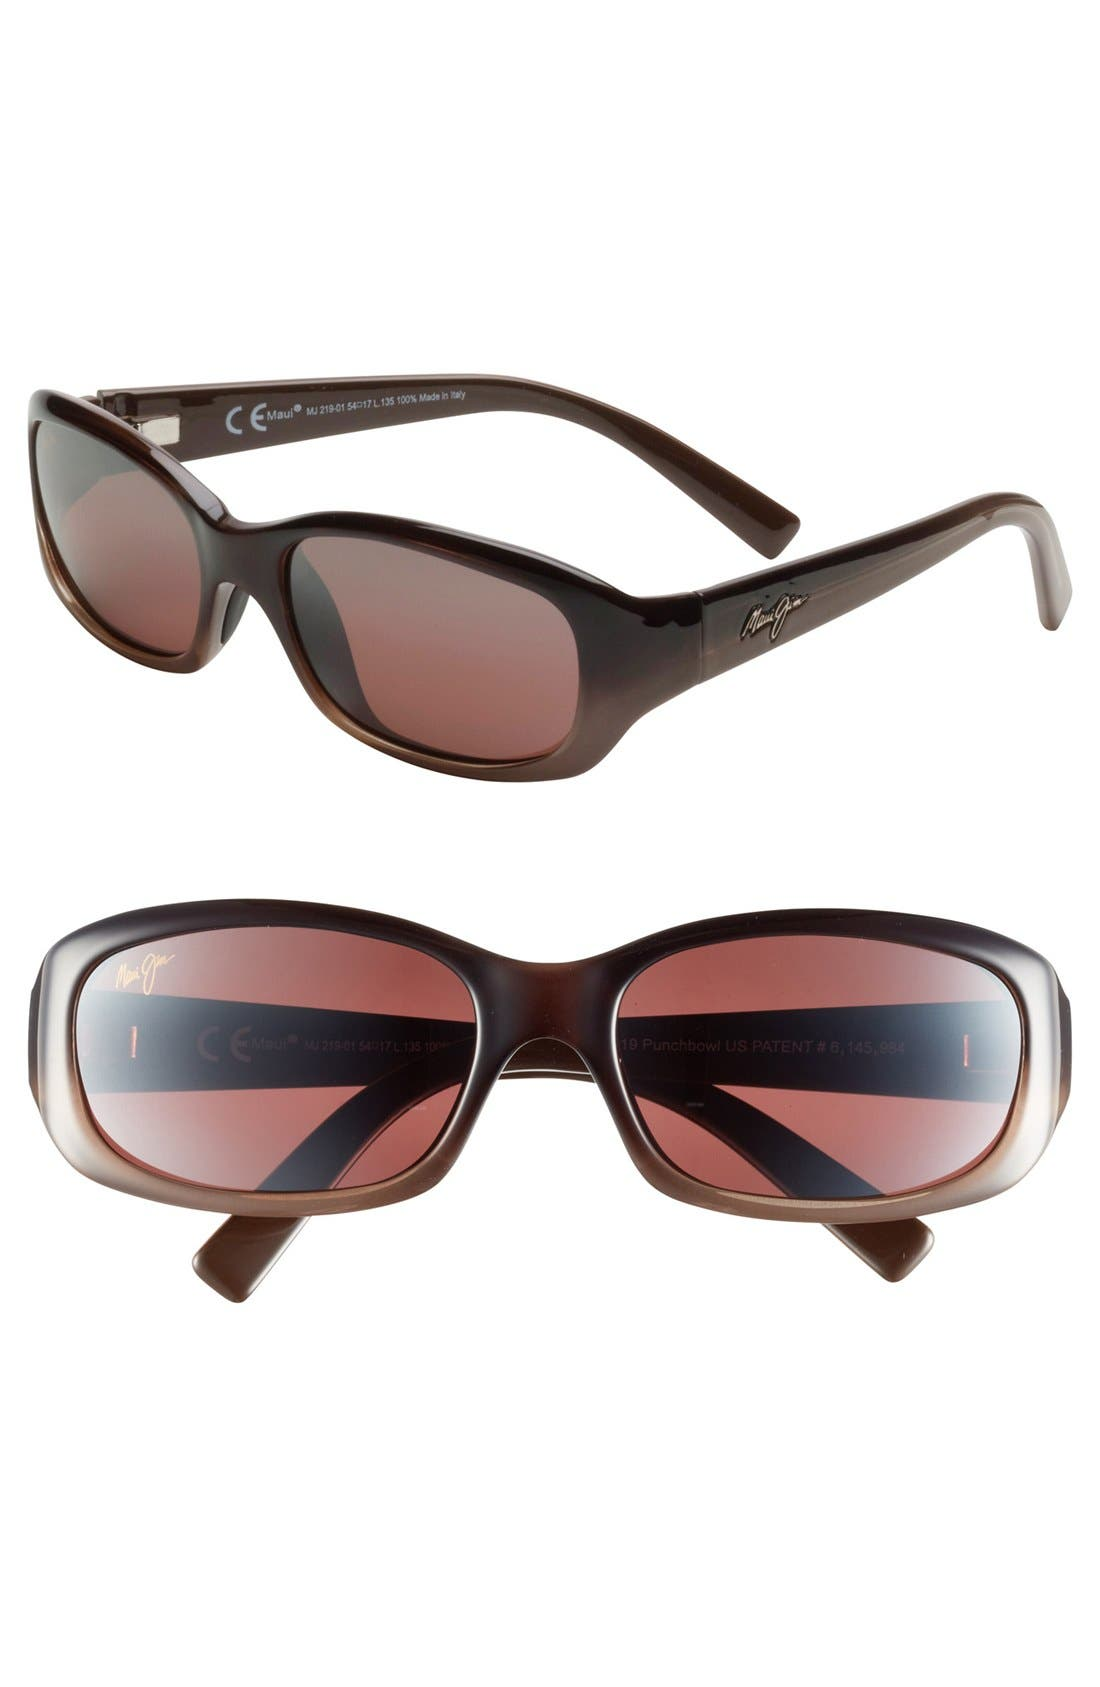 Punchbowl 54mm PolarizedPlus<sup>®</sup> Sunglasses,                             Main thumbnail 1, color,                             CHOCOLATE FADE